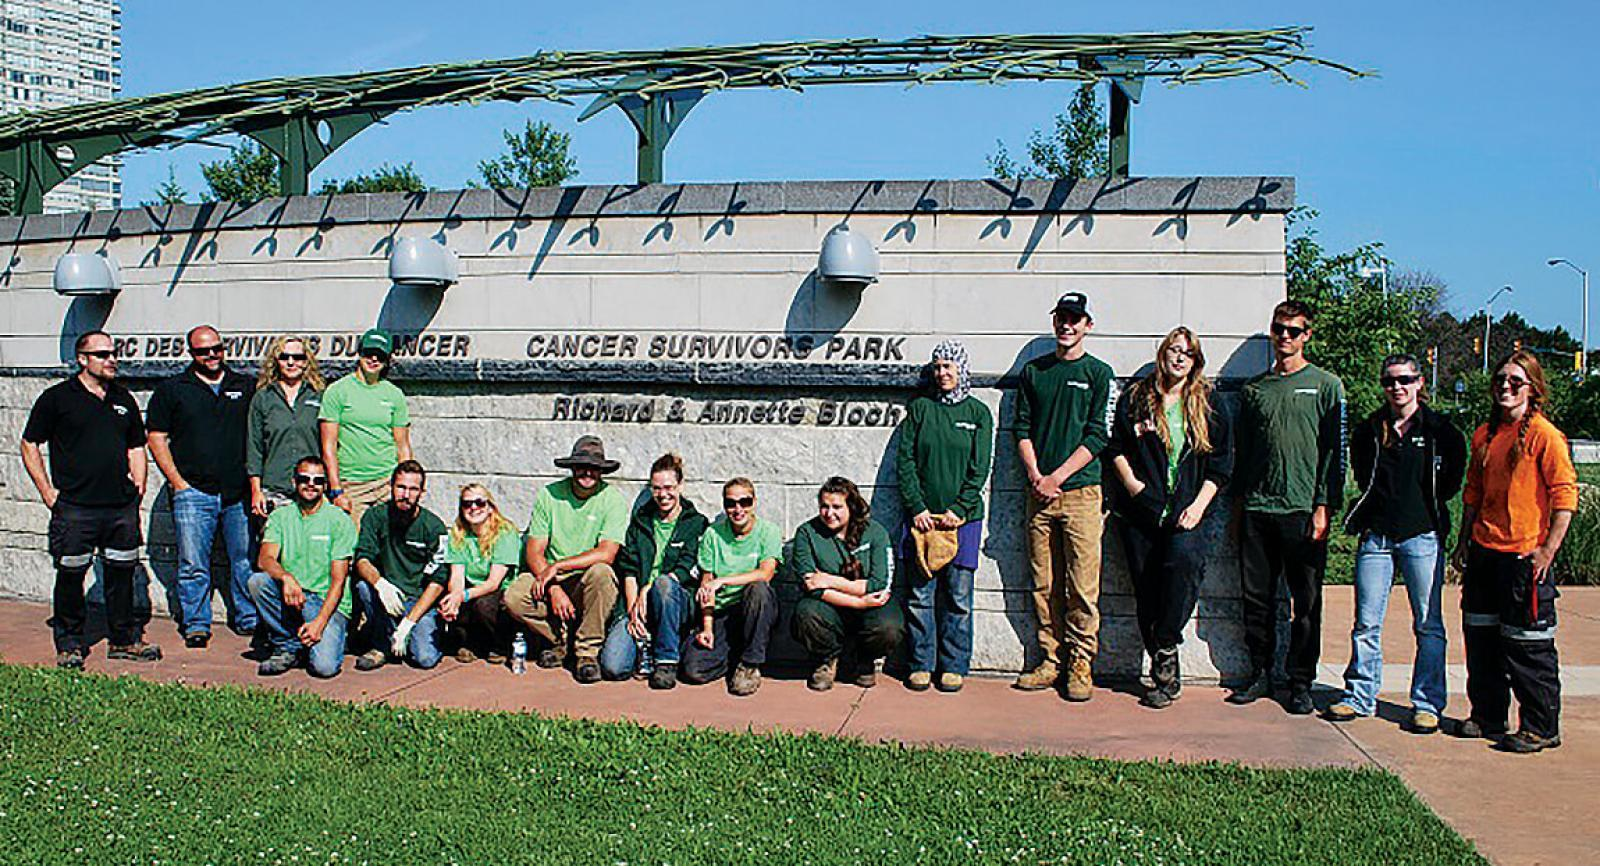 Students from the Horticultural Industries Program at Algonquin College had some hands-on instruction from LO members at the Cancer Survivors' Park, at top. Below, LO members donated their time in both the Park's maintenance and instructing the students.